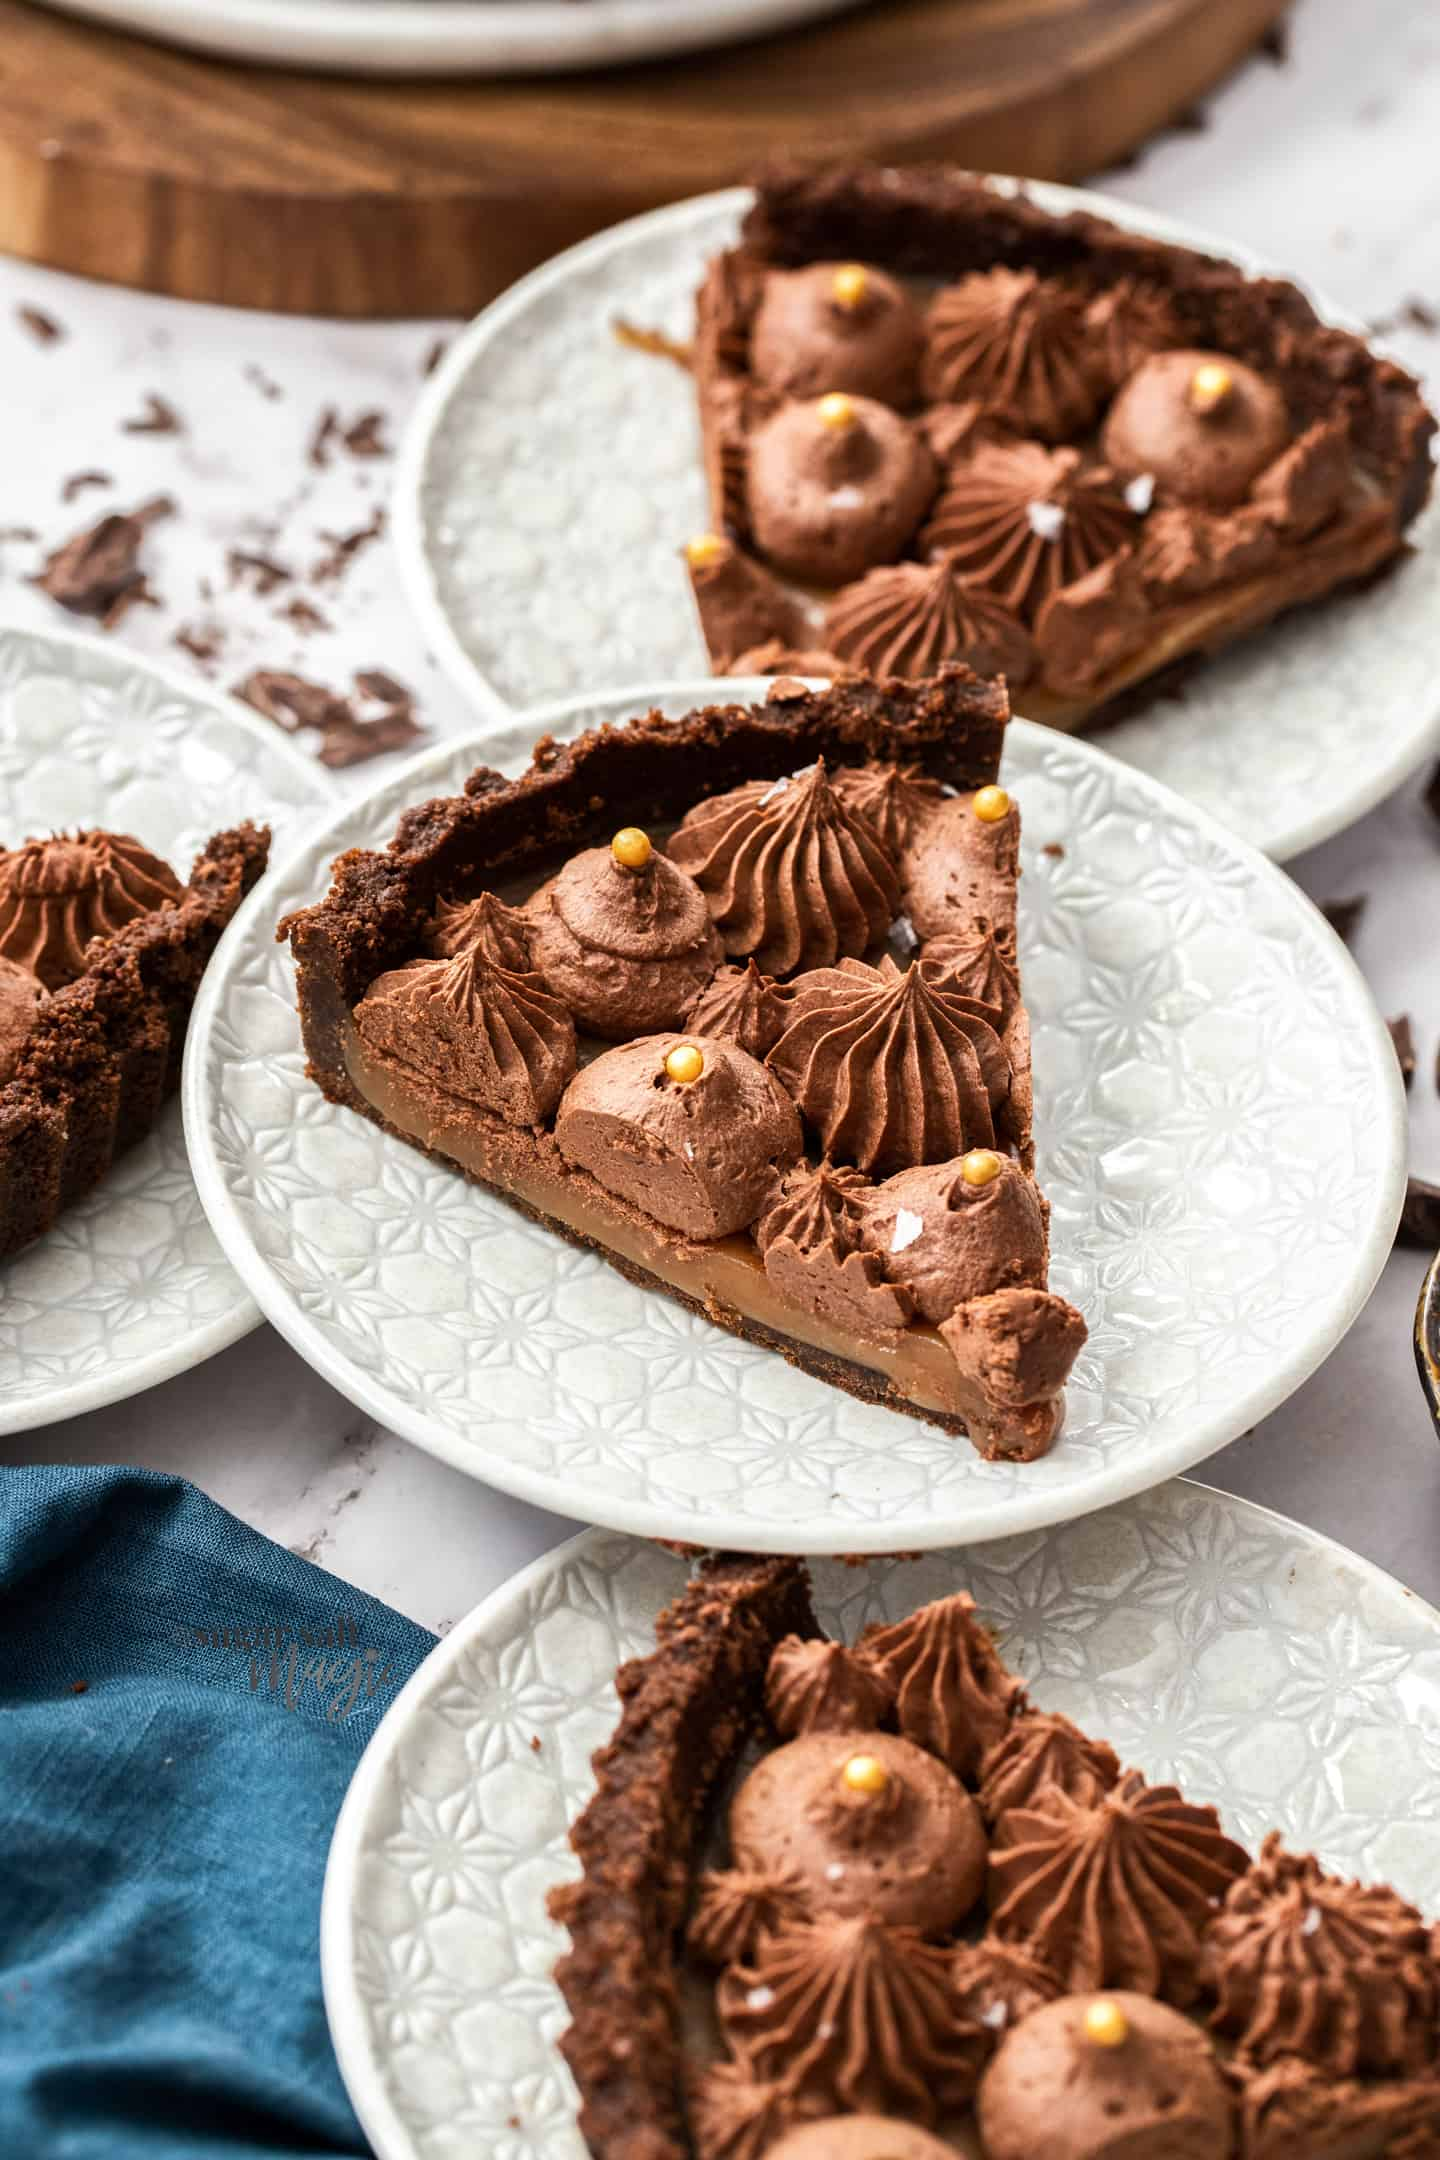 3 slices of chocolate caramel tart on white dessert plates with piped ganache stars on top.